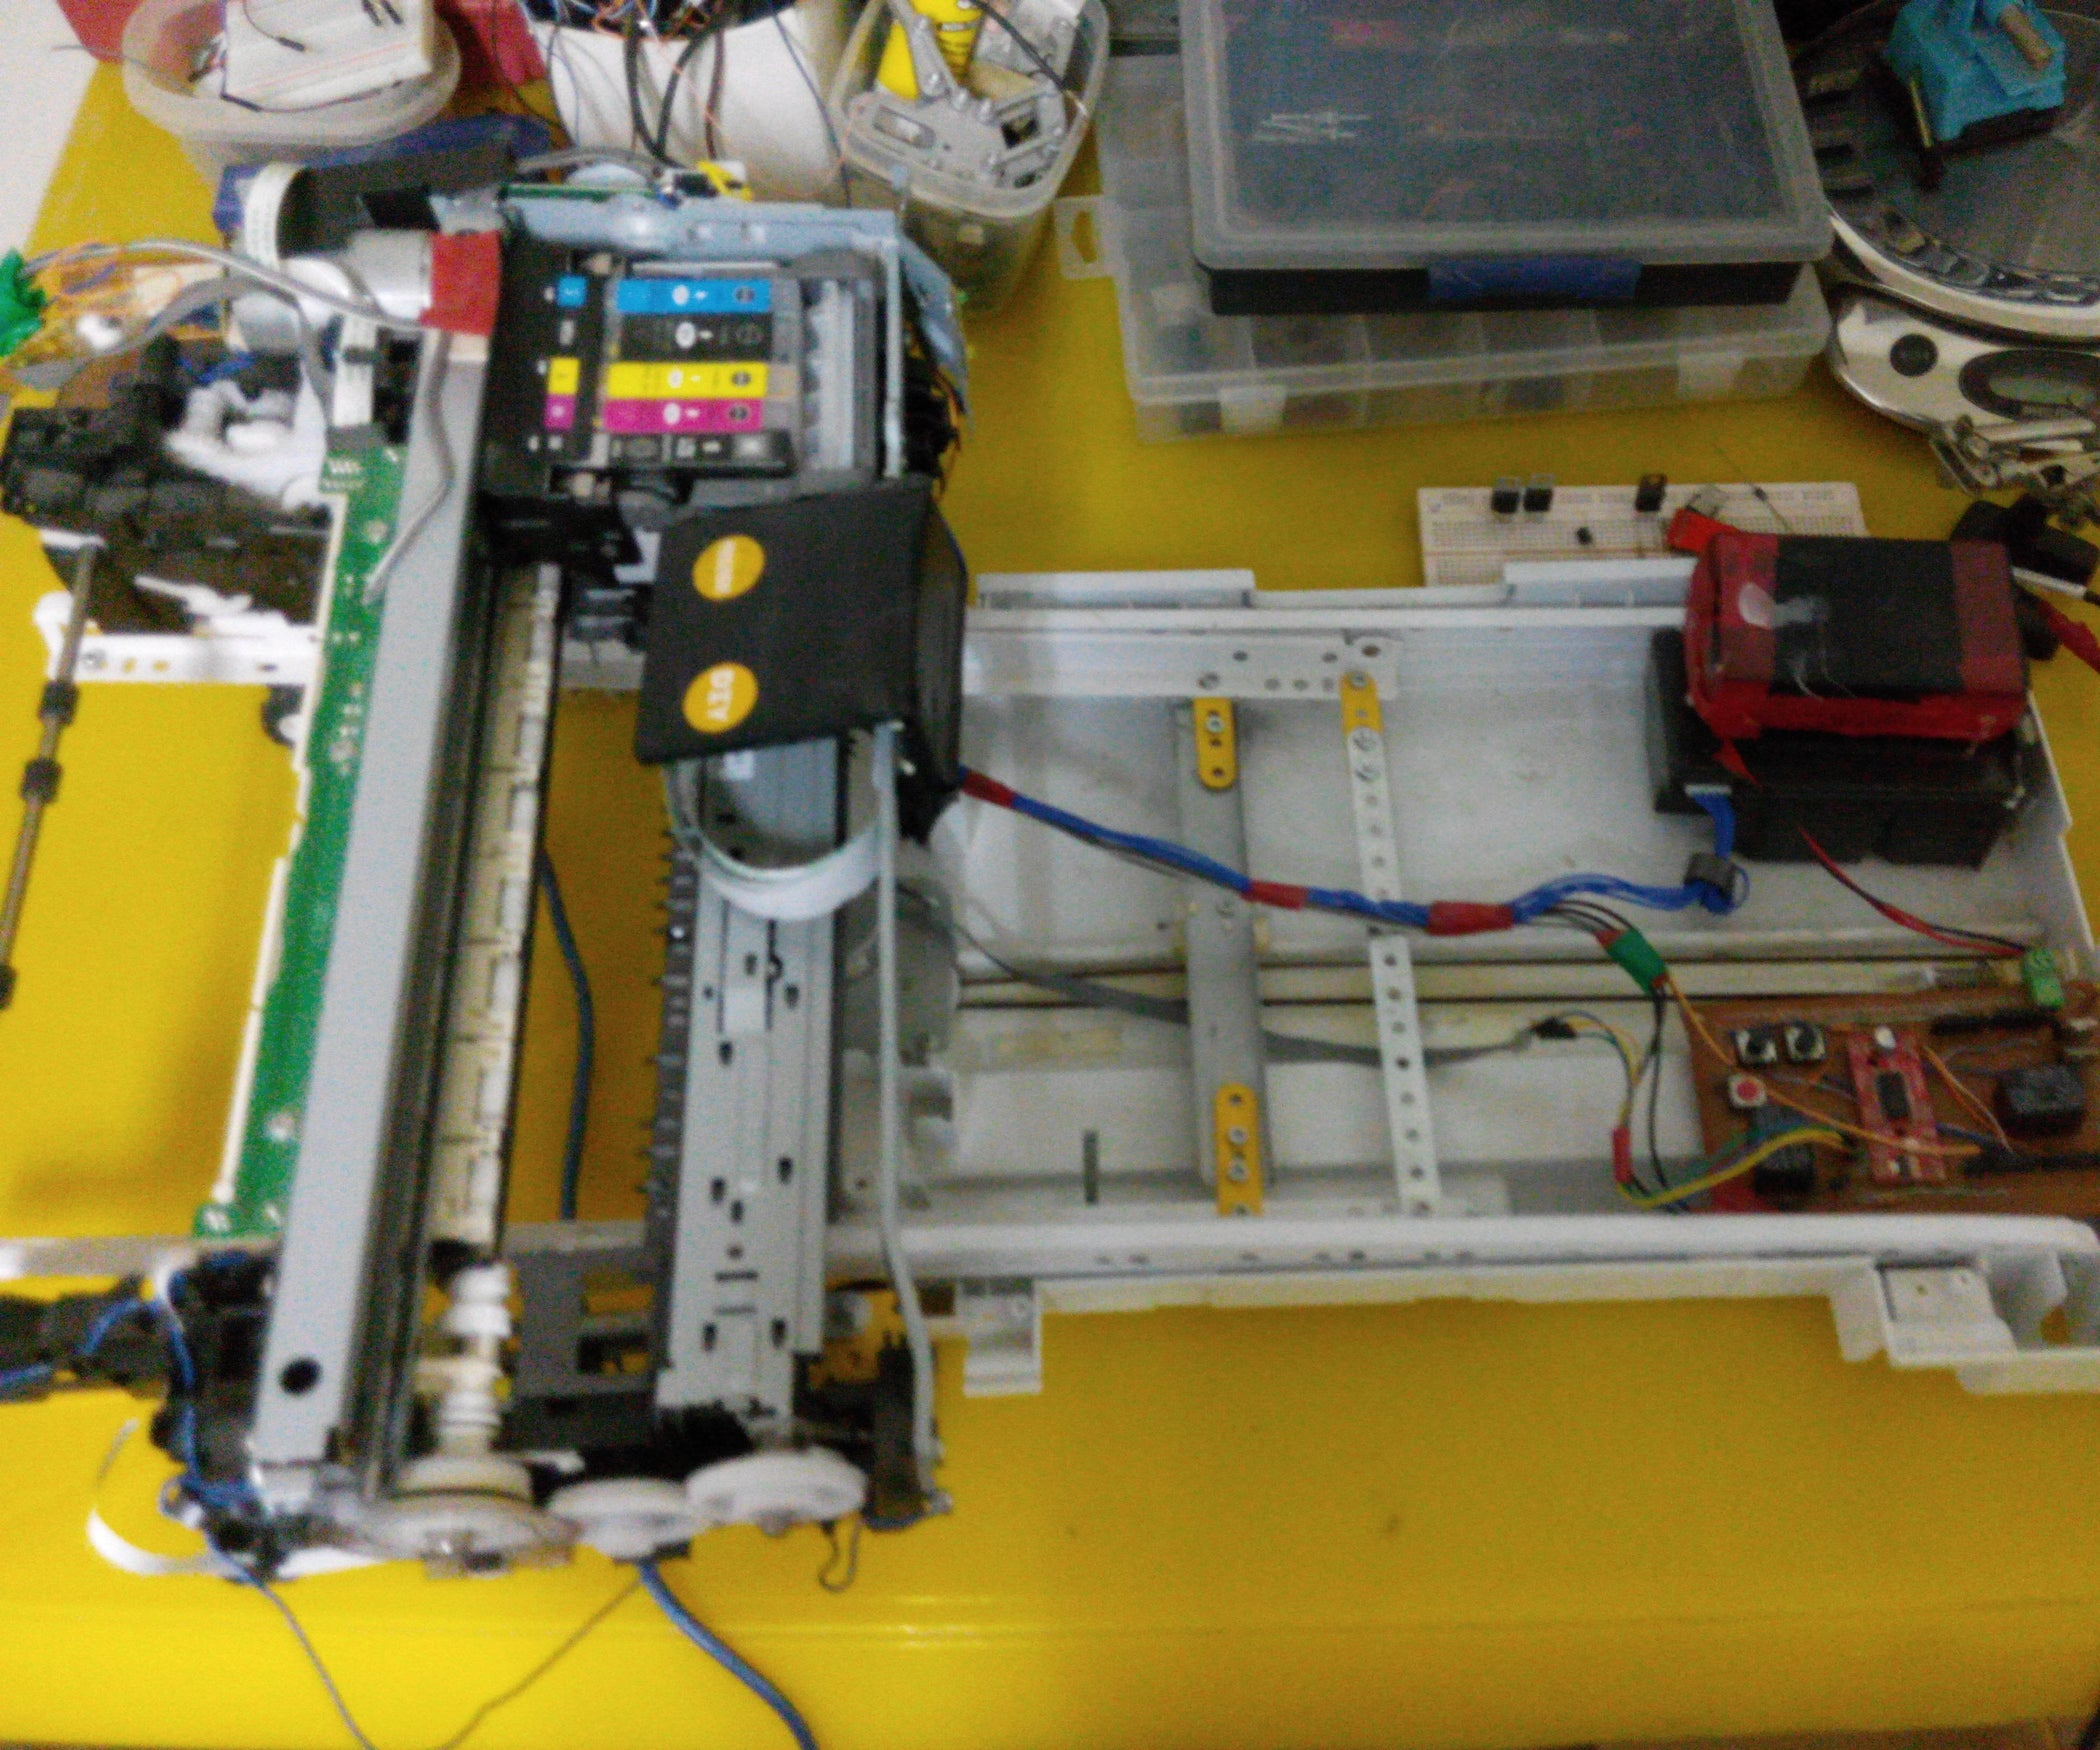 How To Turn Inkjet Printer Print On Coffee 10 Steps With Pictures Cm Flatbed 6 Pin Wiring Harness